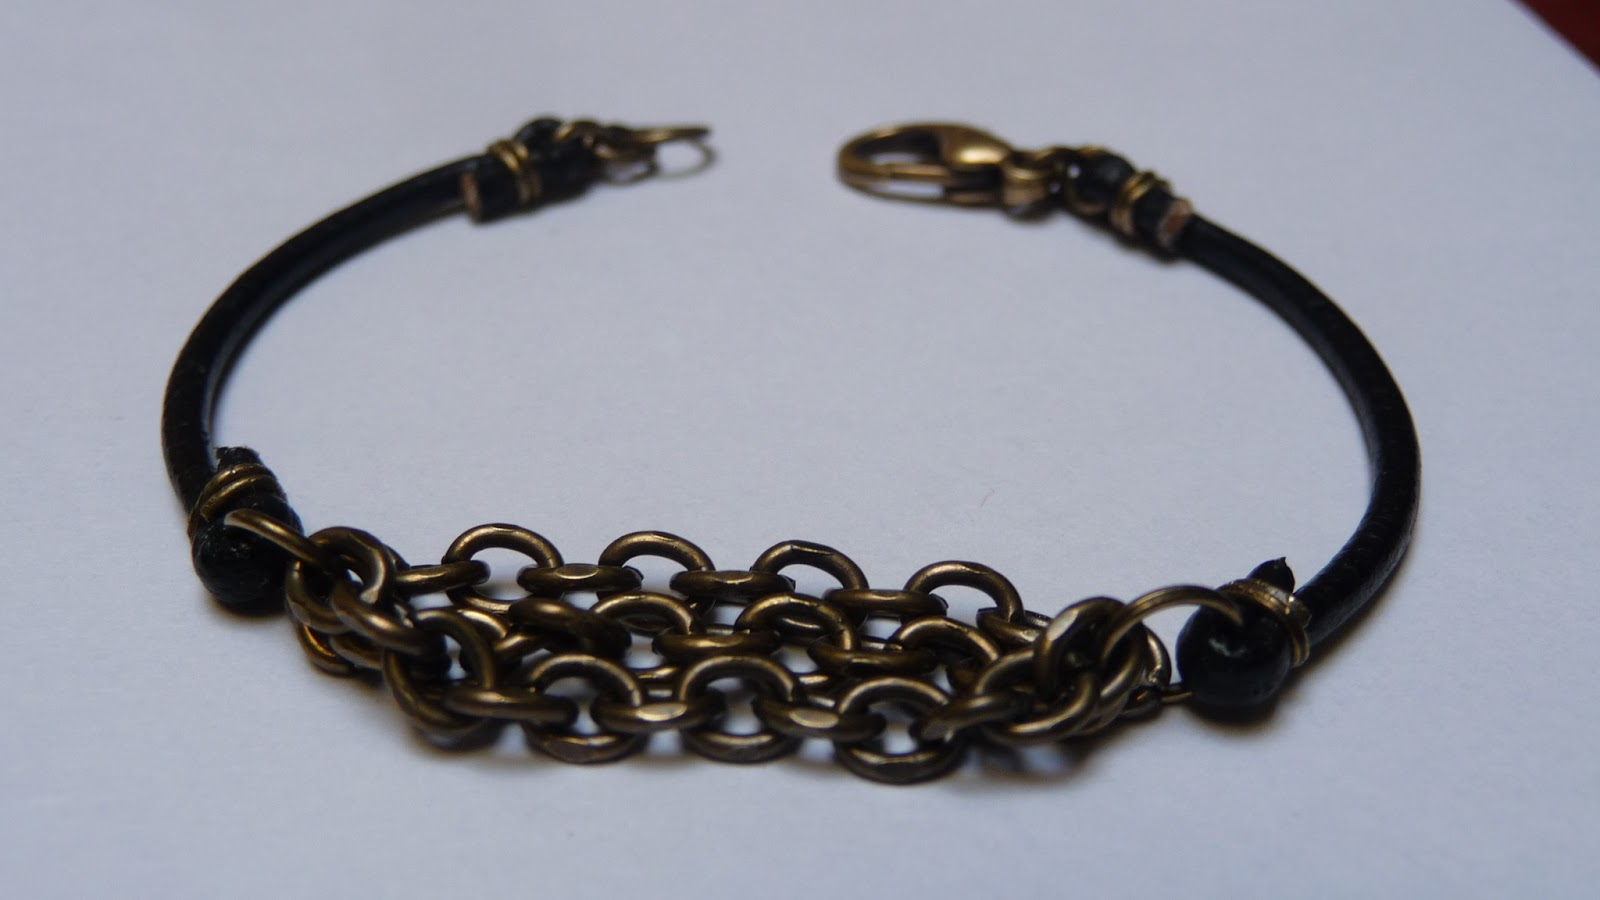 and stuff leather cord and metal chain bracelet